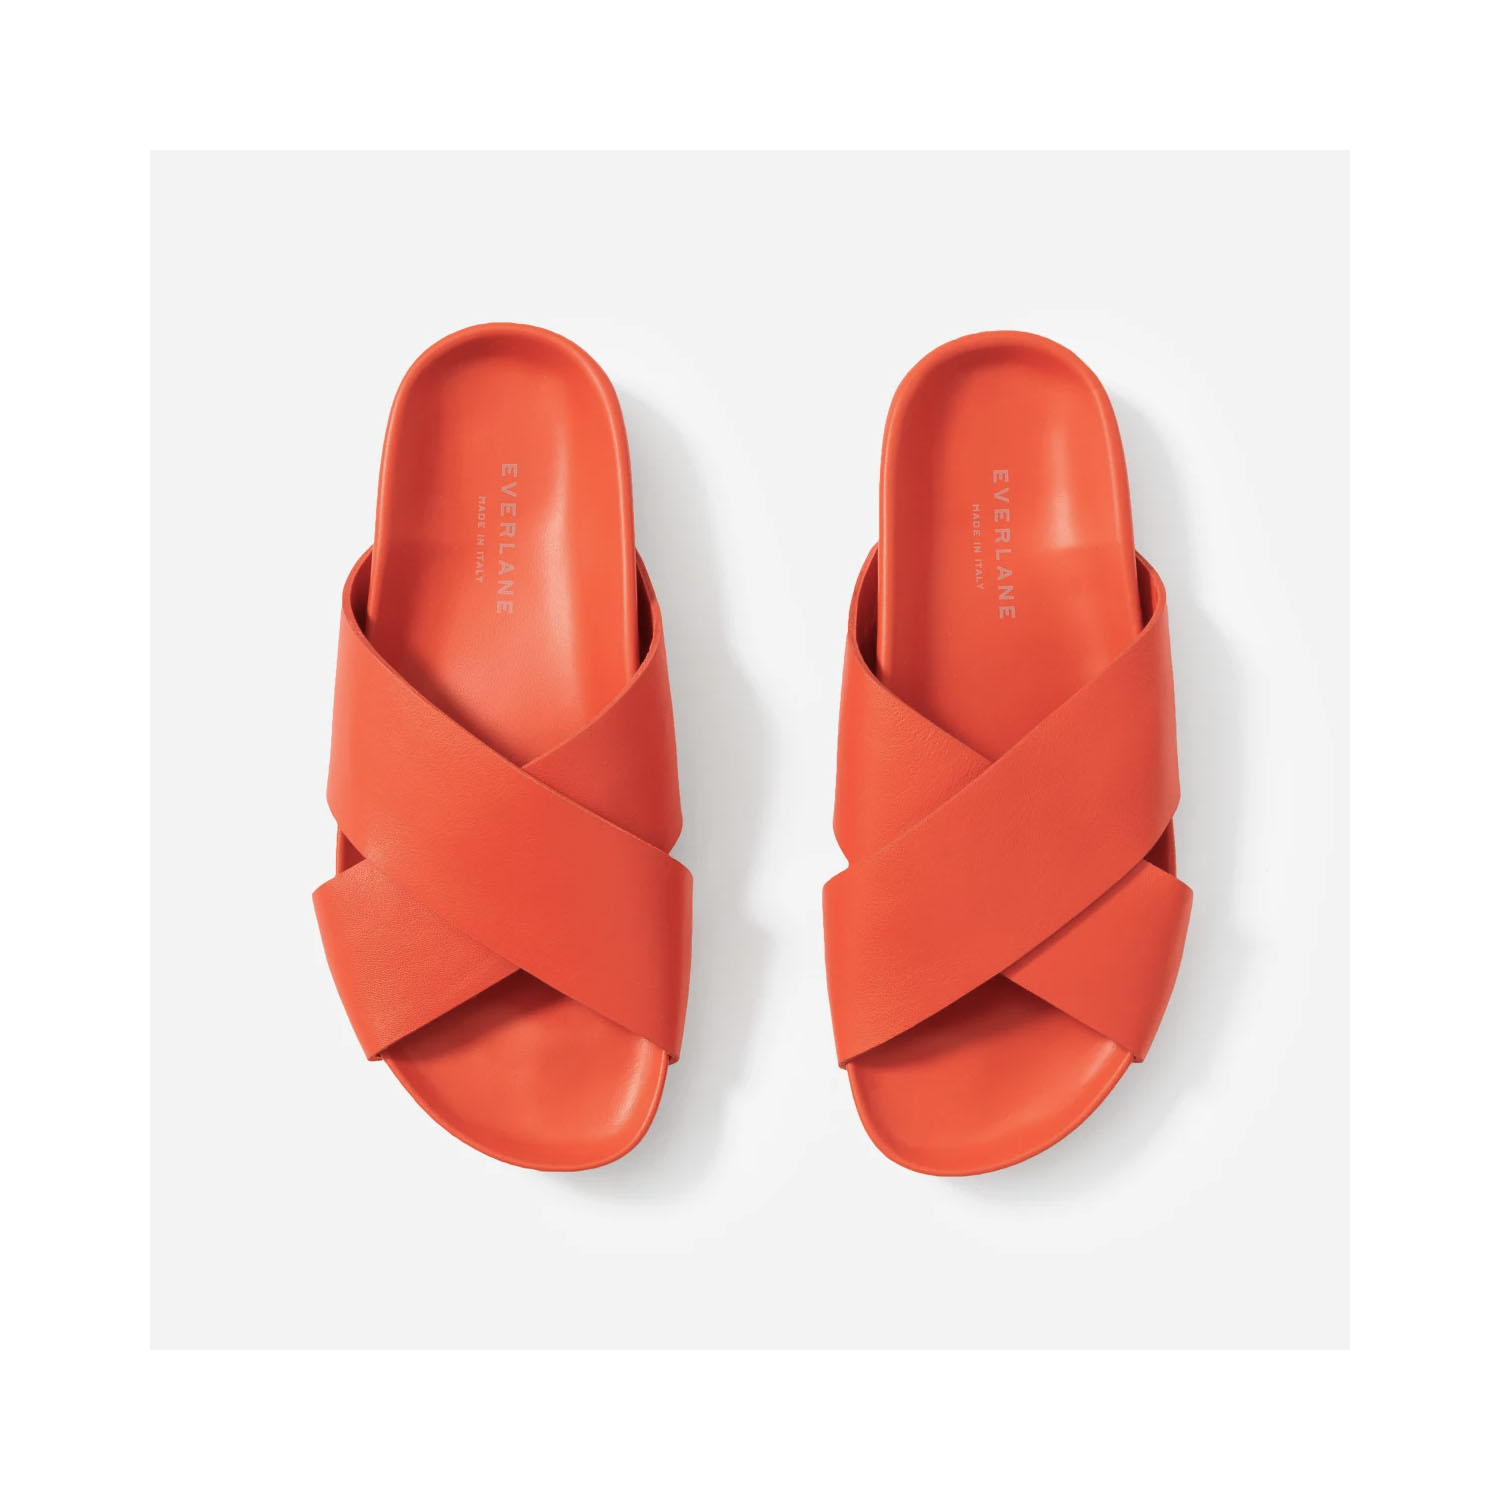 The Form Crossover Sandal in Paprika